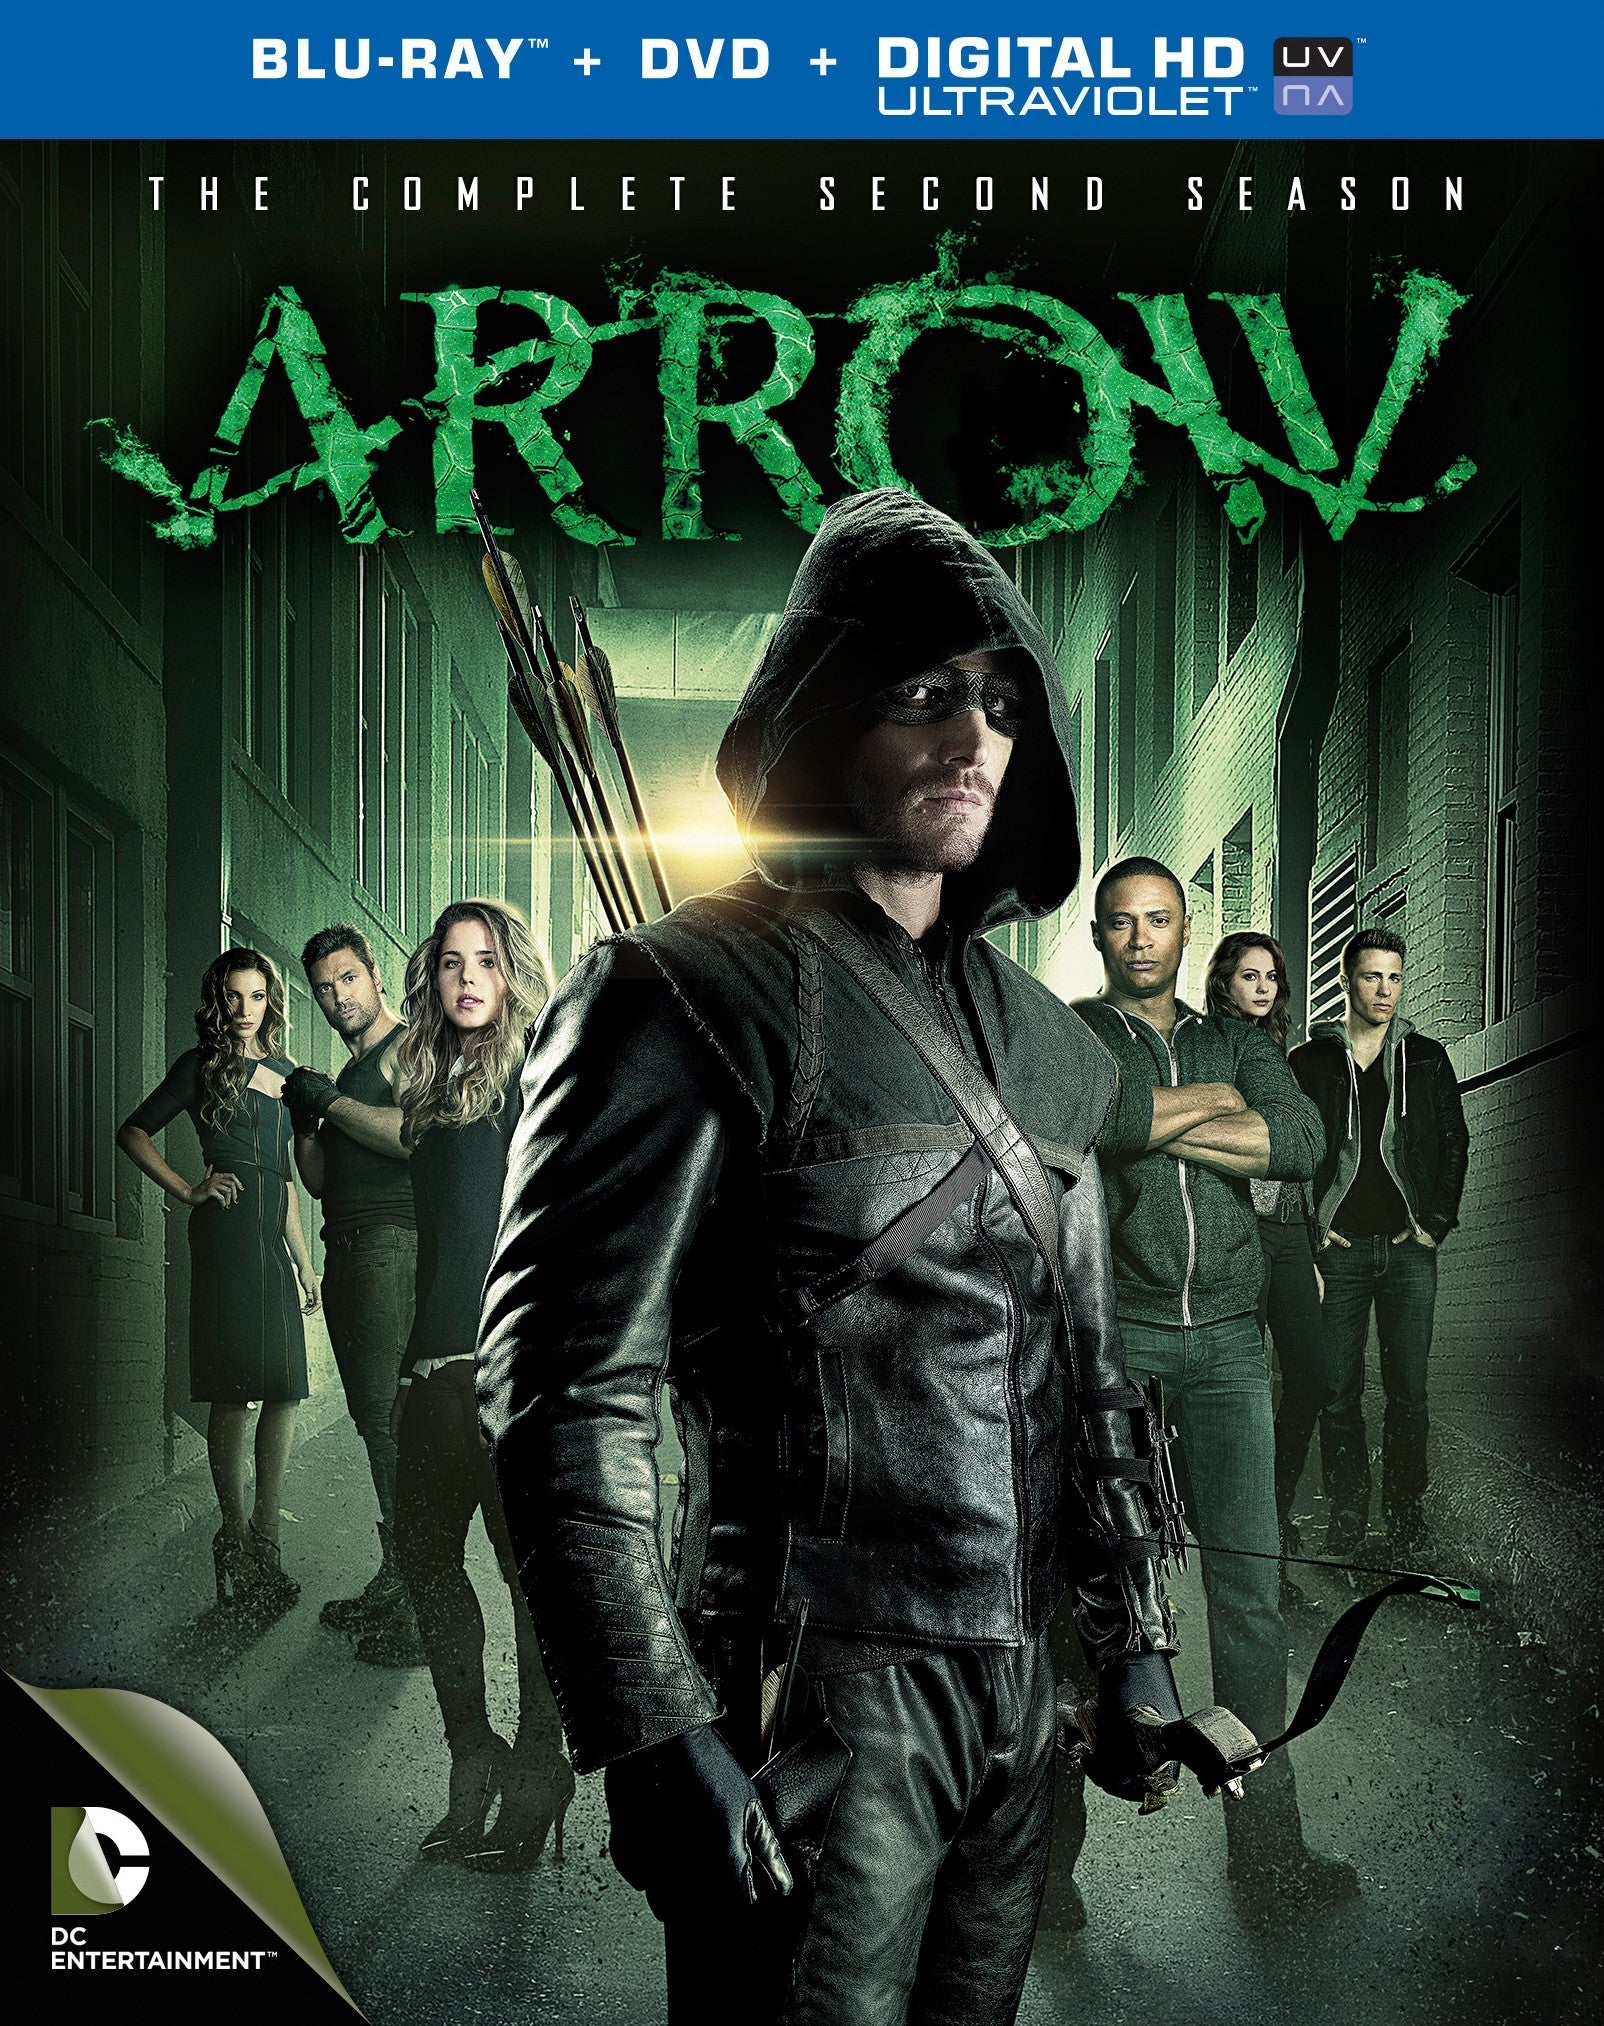 Arrow Season Two Coming to Blu-Ray on September 16